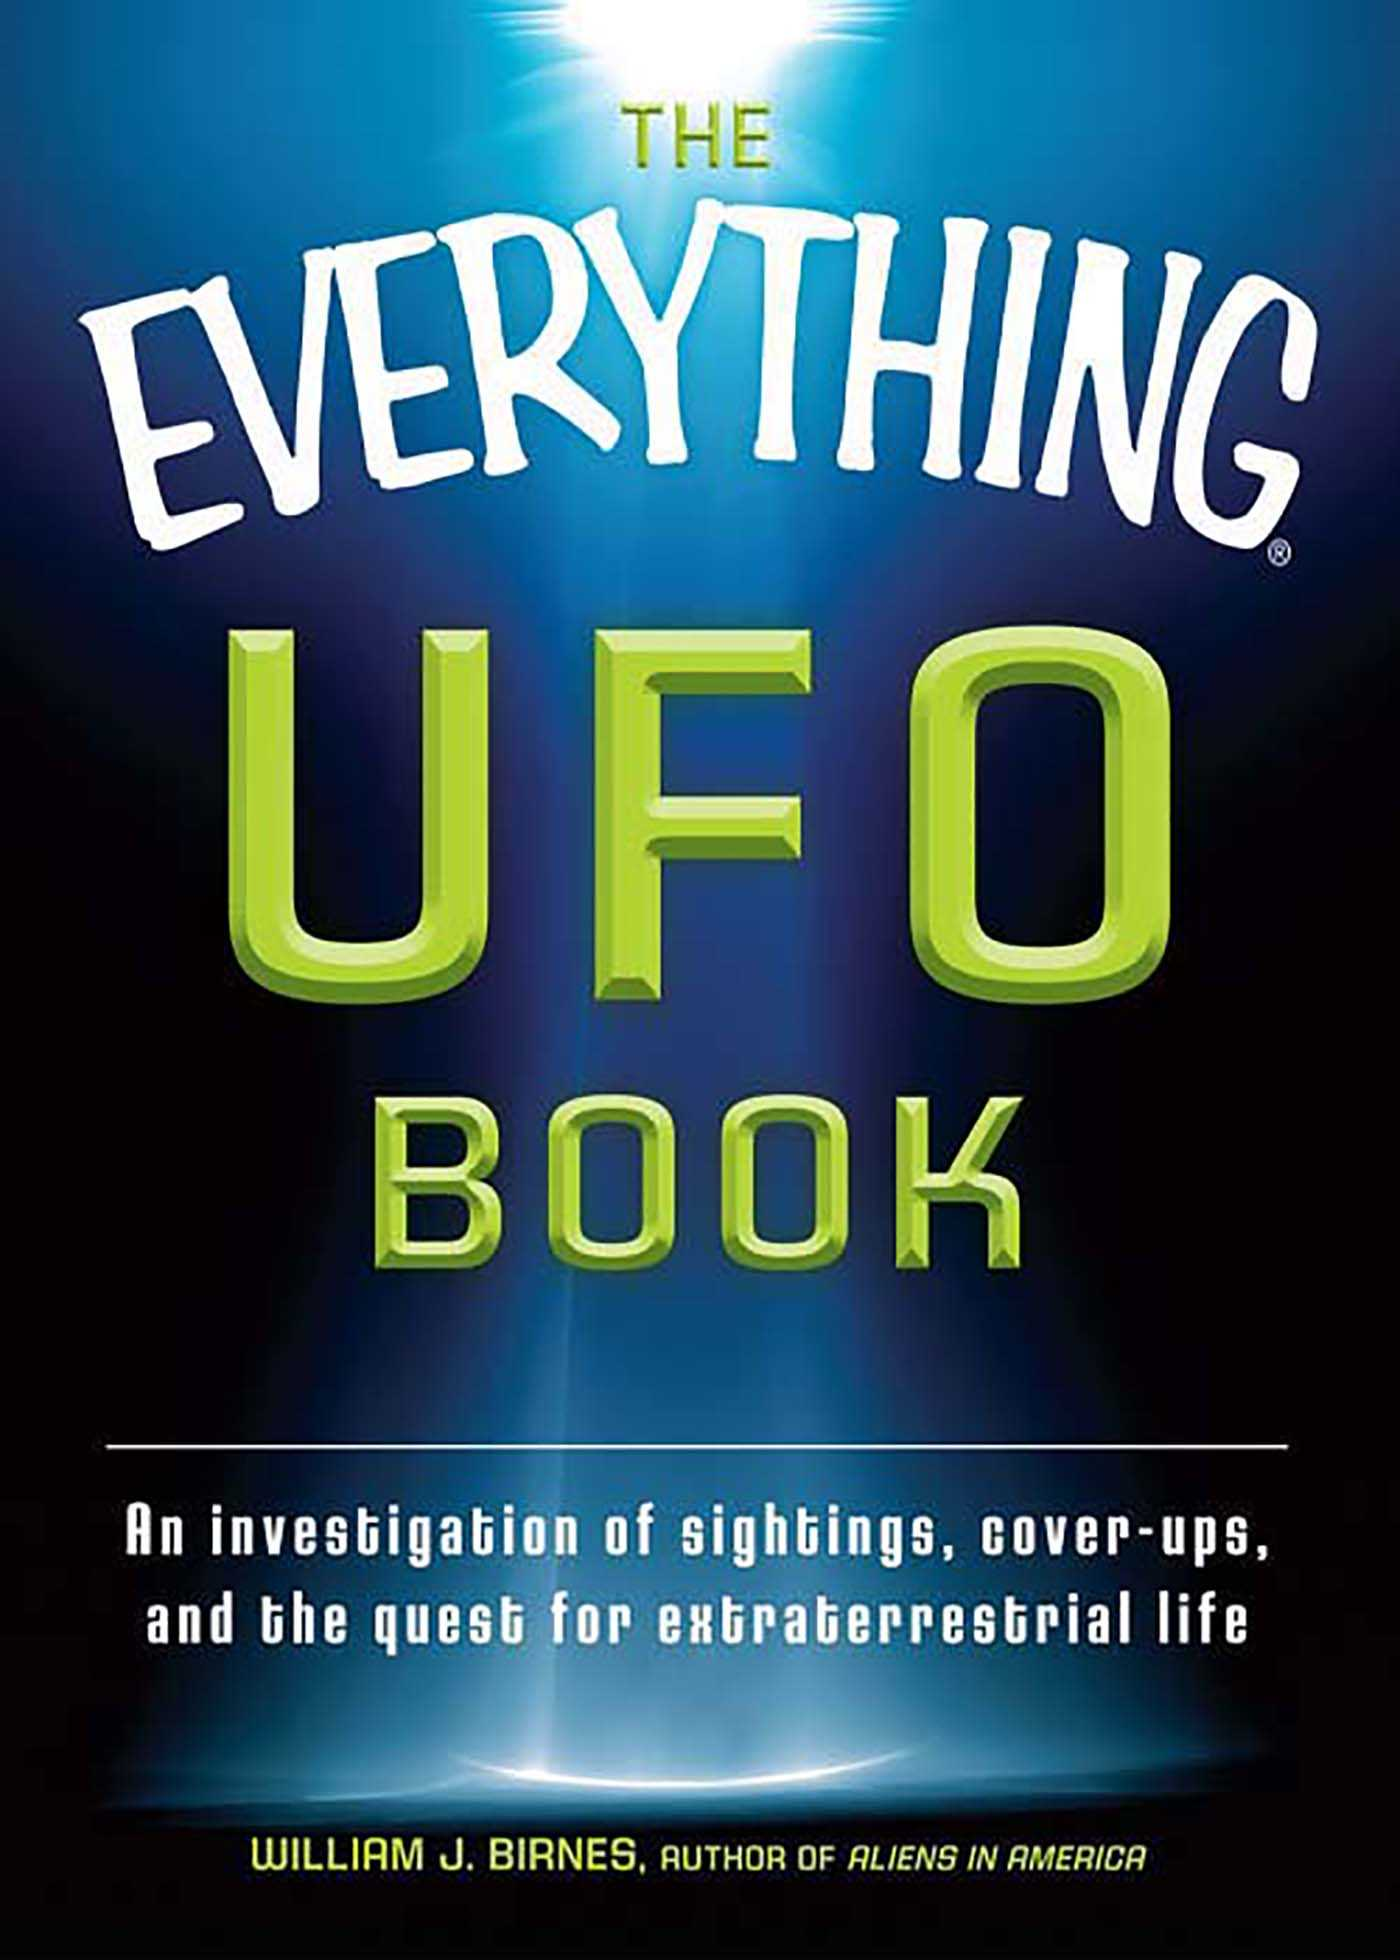 Amazon Quest The Everything Ufo Book Ebook By William J Birnes